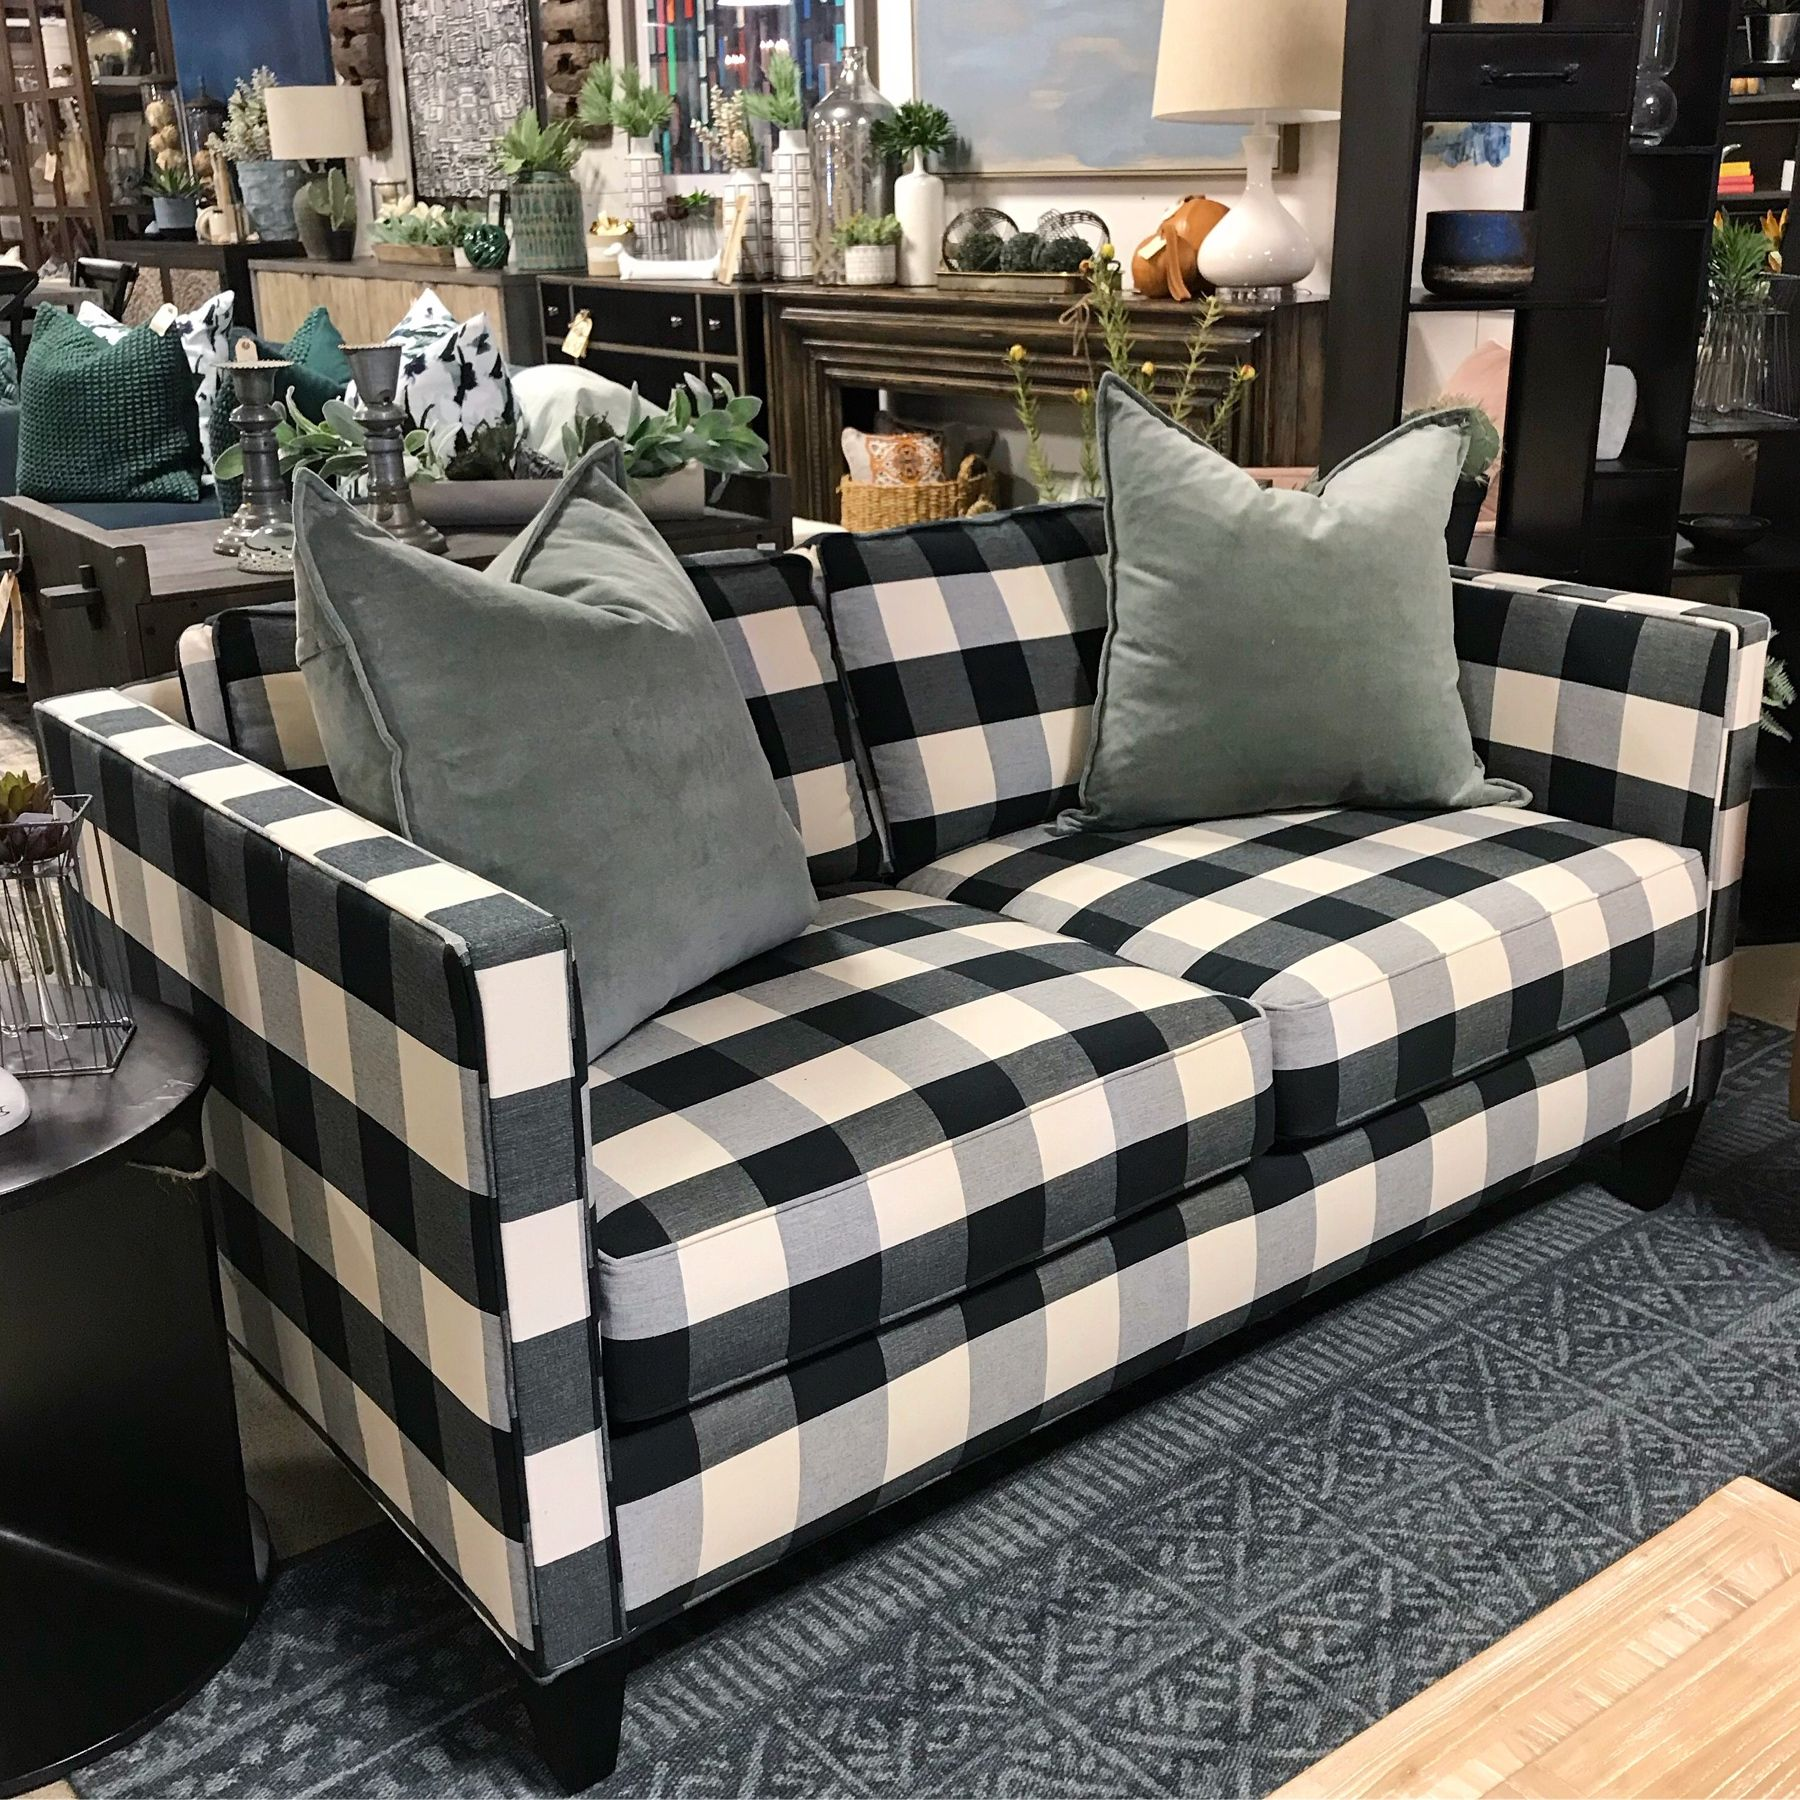 We Love The Versatility Of The Black And White Buffalo Check